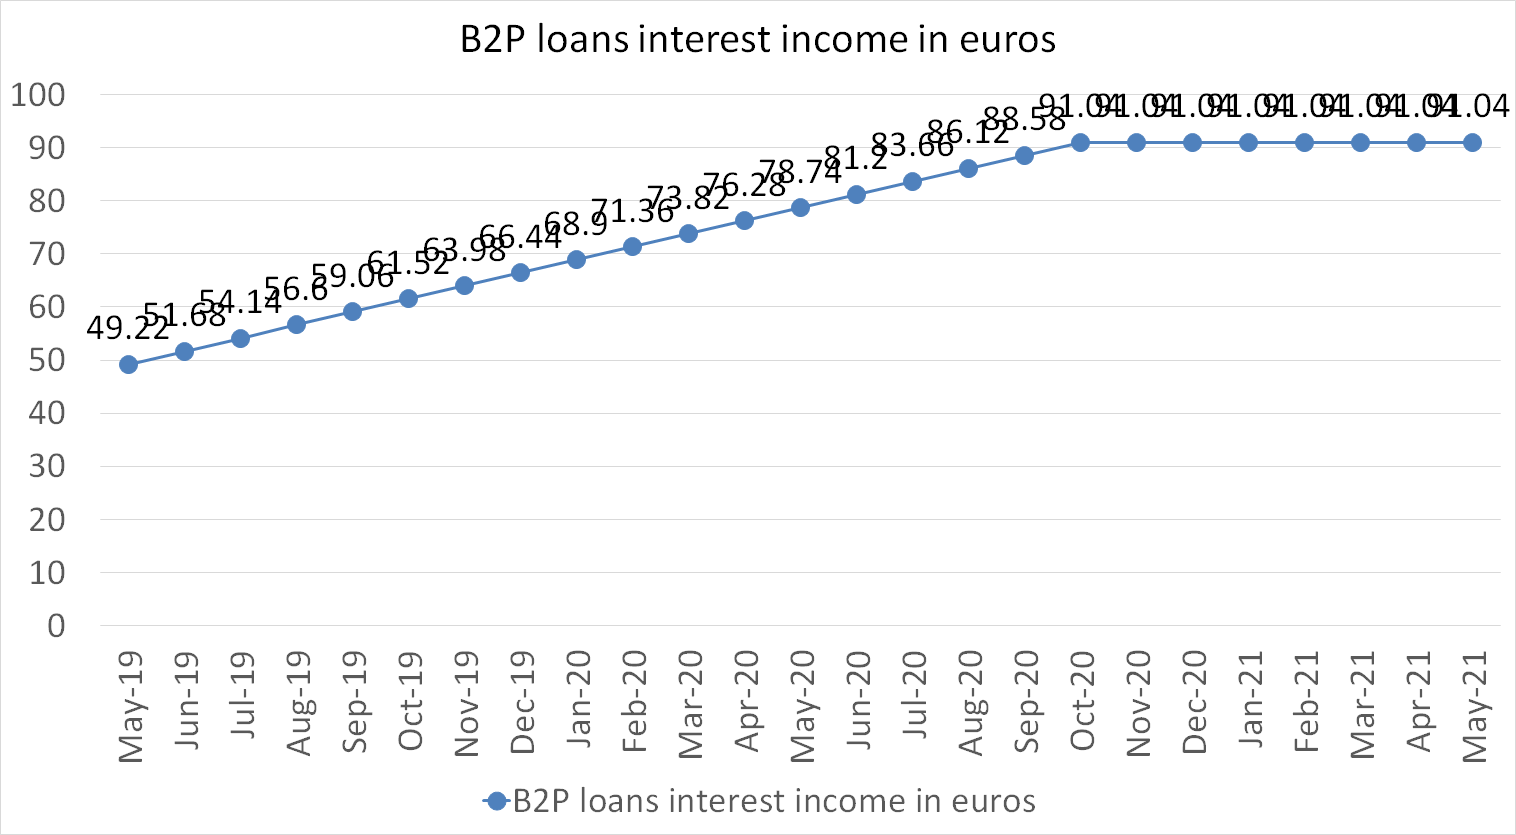 b2p loans interest income in euros 2021